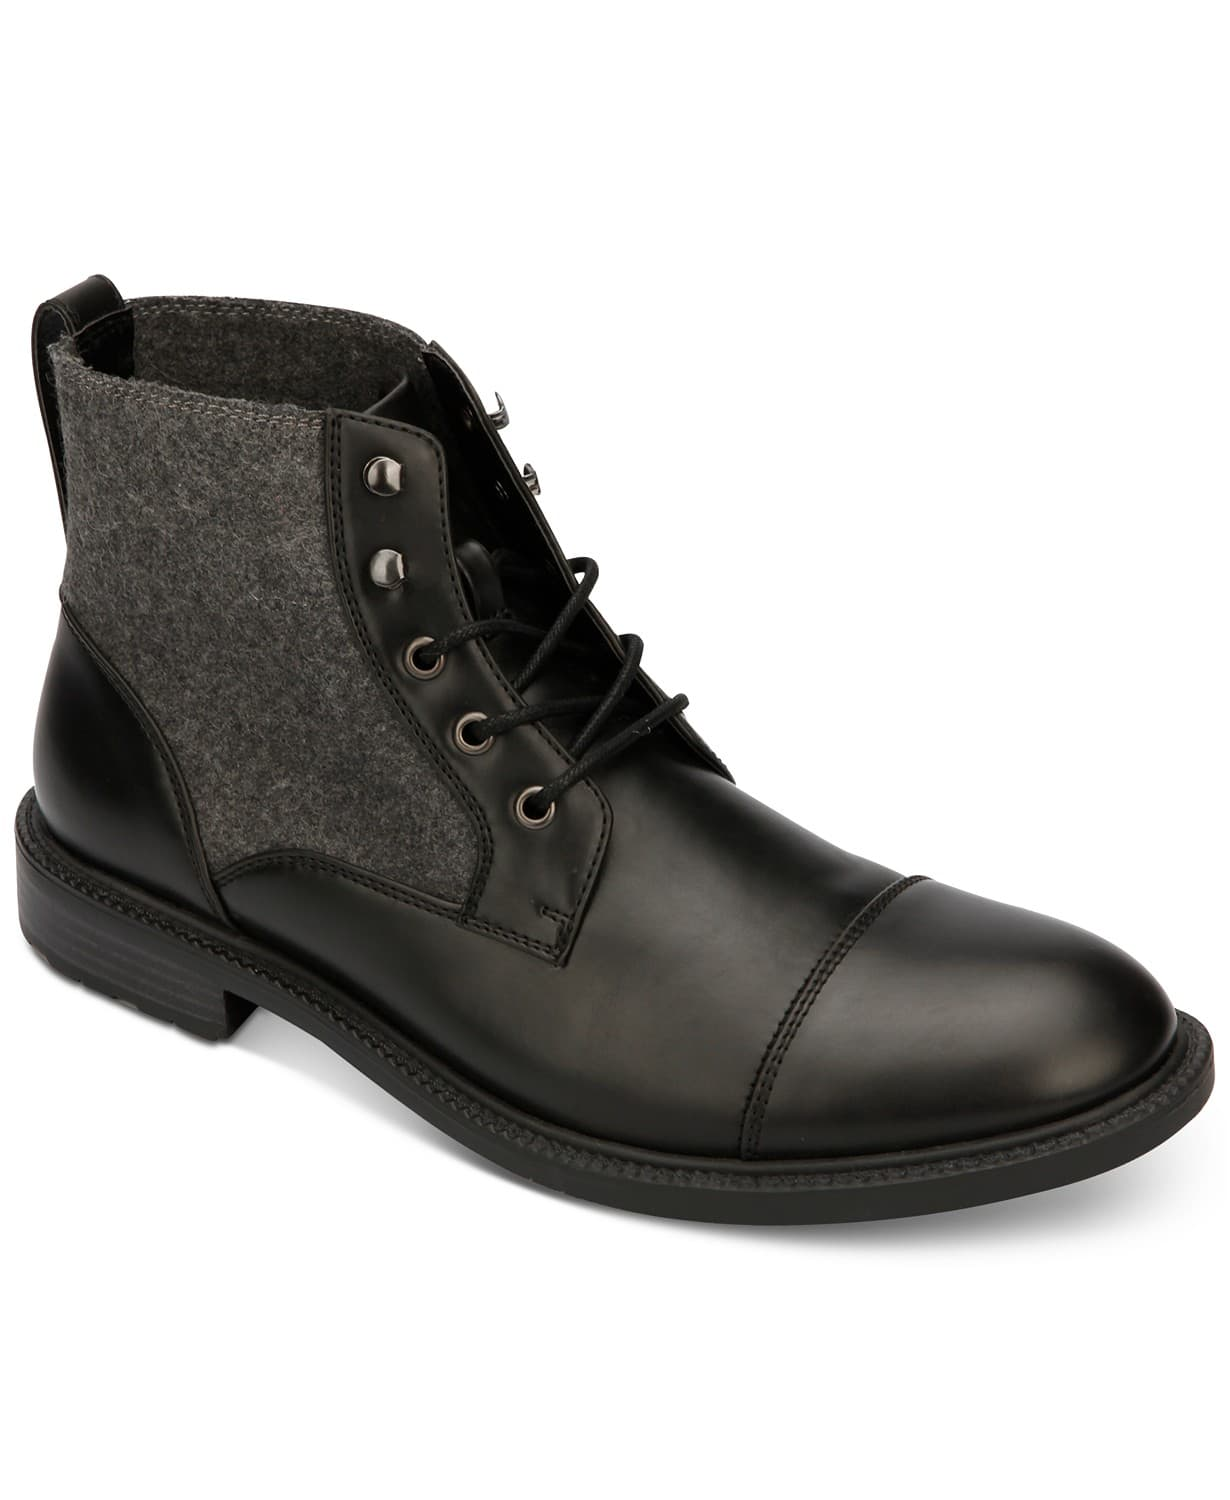 9fef2669be0c4e Men s Unlisted by Kenneth Cole Boots (various styles) - Slickdeals.net